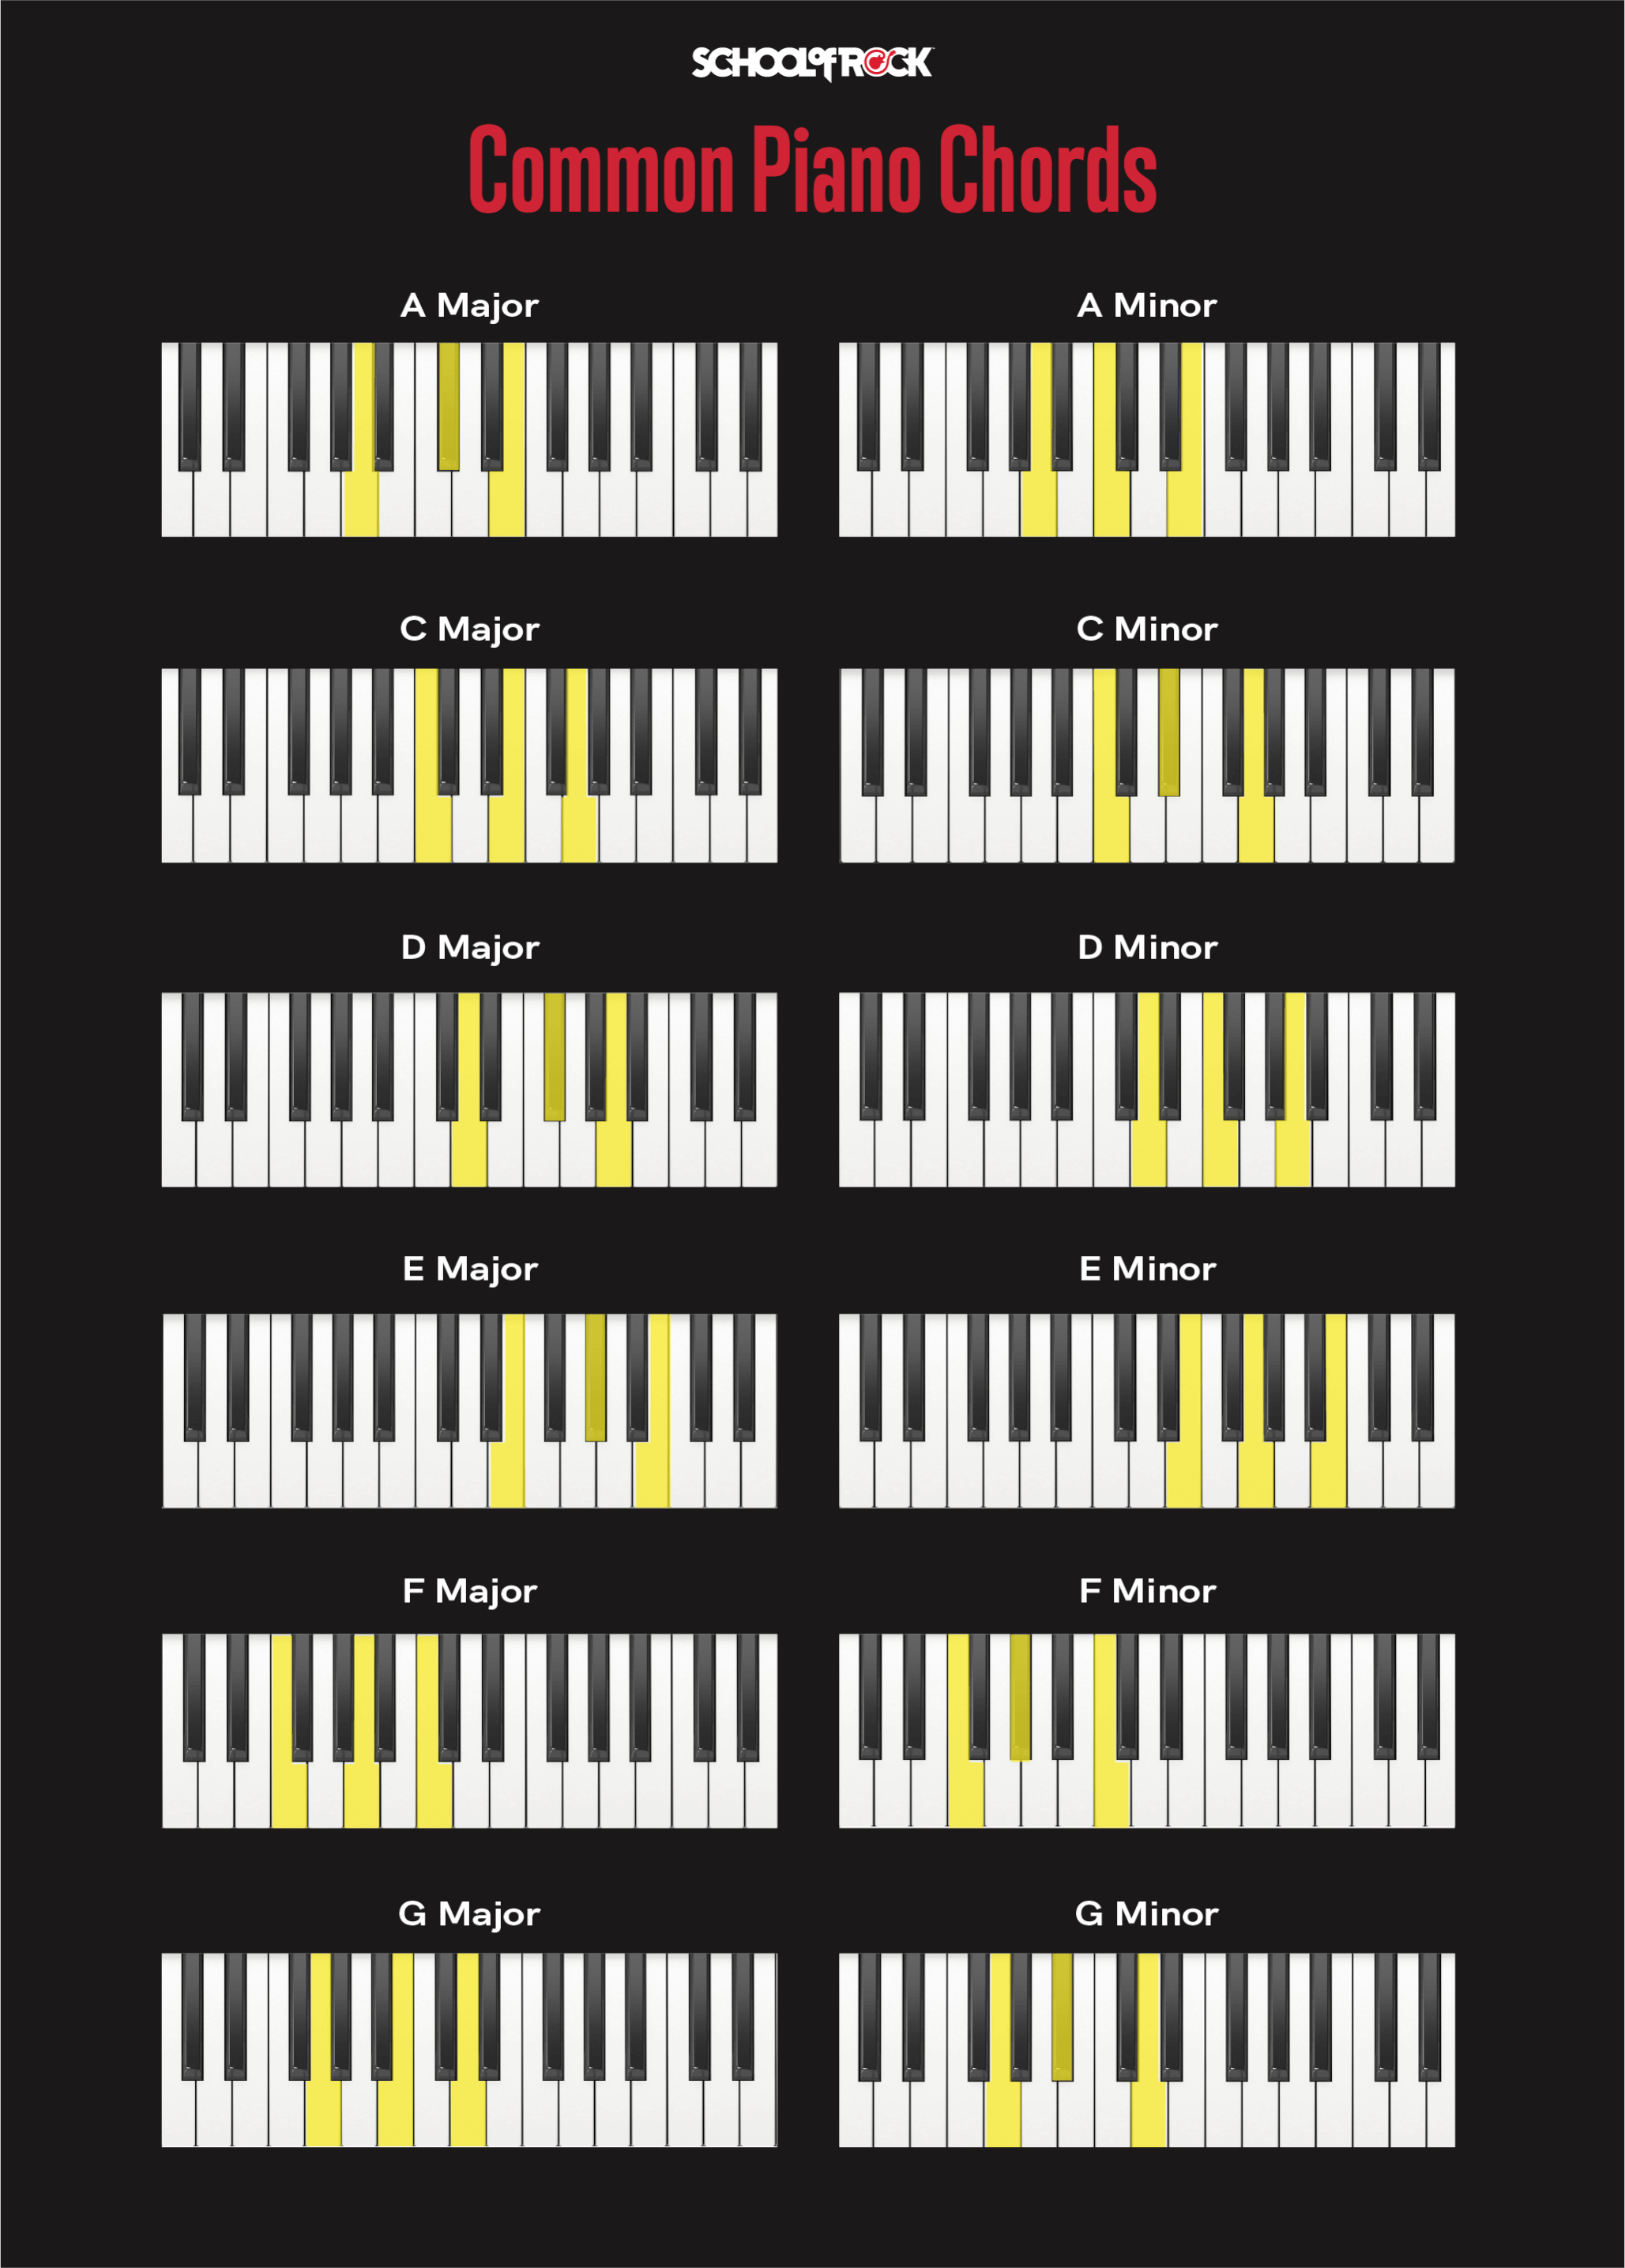 Most common piano chords include A, C, D, E, F, and G in both the major and minor scale.